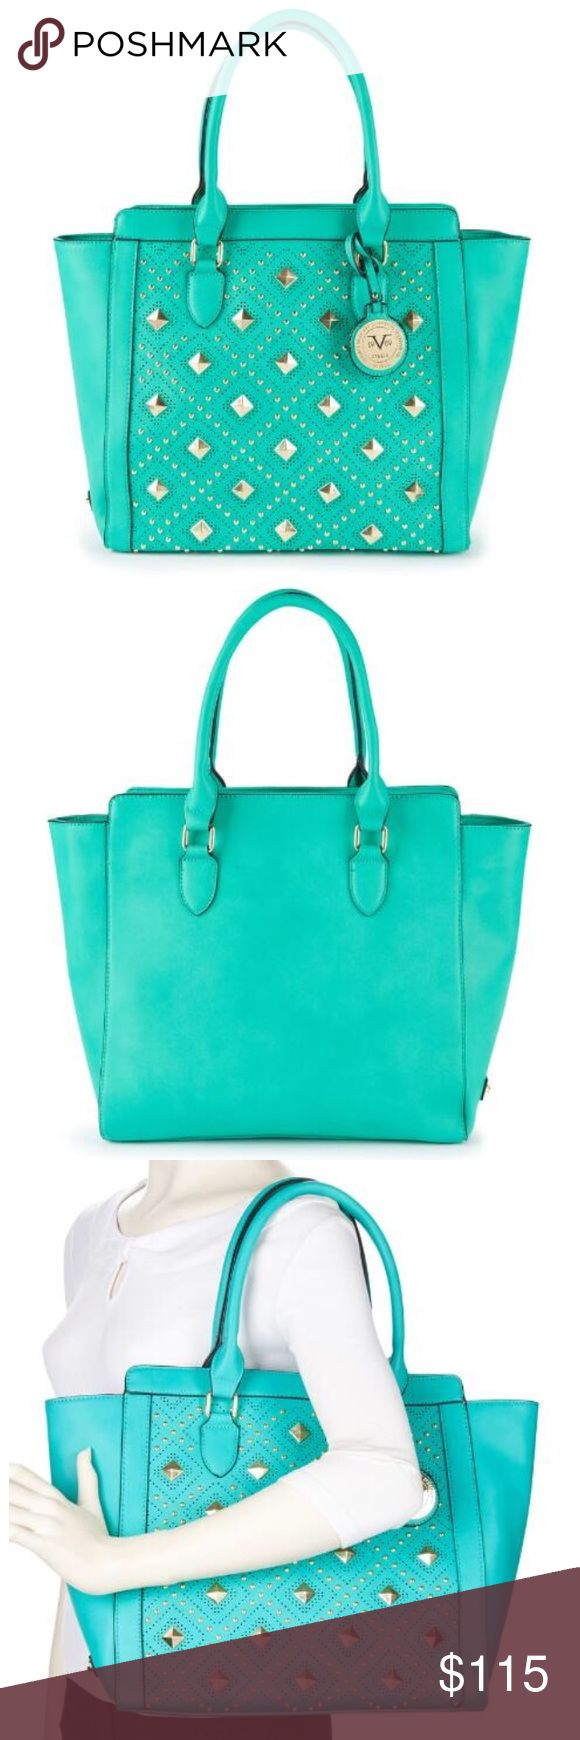 """V19.69 Italia by Versace • Veronika Tote The Veronika tote is part of the Versace 1969 Italia Abbigliamento Sportivo Collection. Designed with a perforated studded front for a casual elegance that will take you through the seasons in timeless style. Features gusseted sides, dual rolled top handles (7"""" drop) and secure zip top closure. A chic tribal print lines the interior for an overall couture look. Vegan Leather. Imported from Italy. Dimensions: 18"""" x 13"""" x 5.5"""" Two interior open pockets…"""